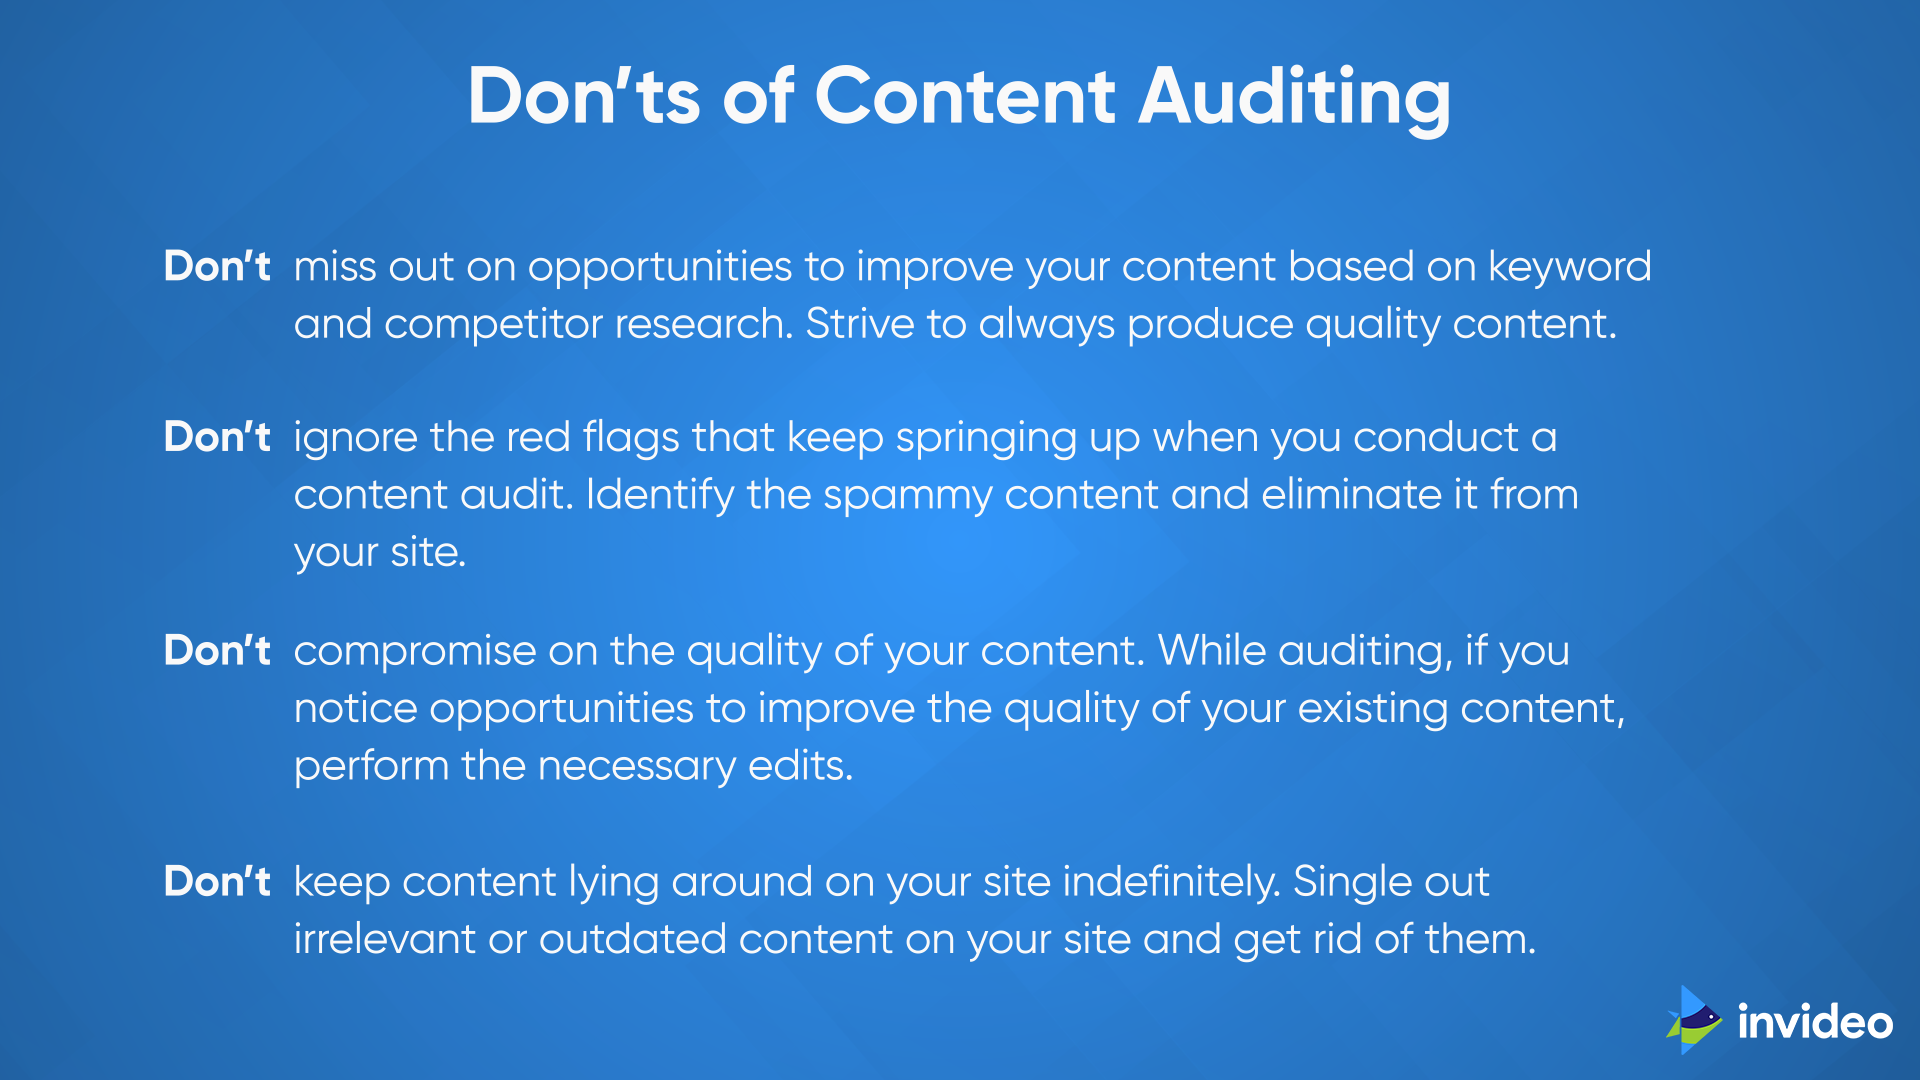 Dont's of Content Auditing